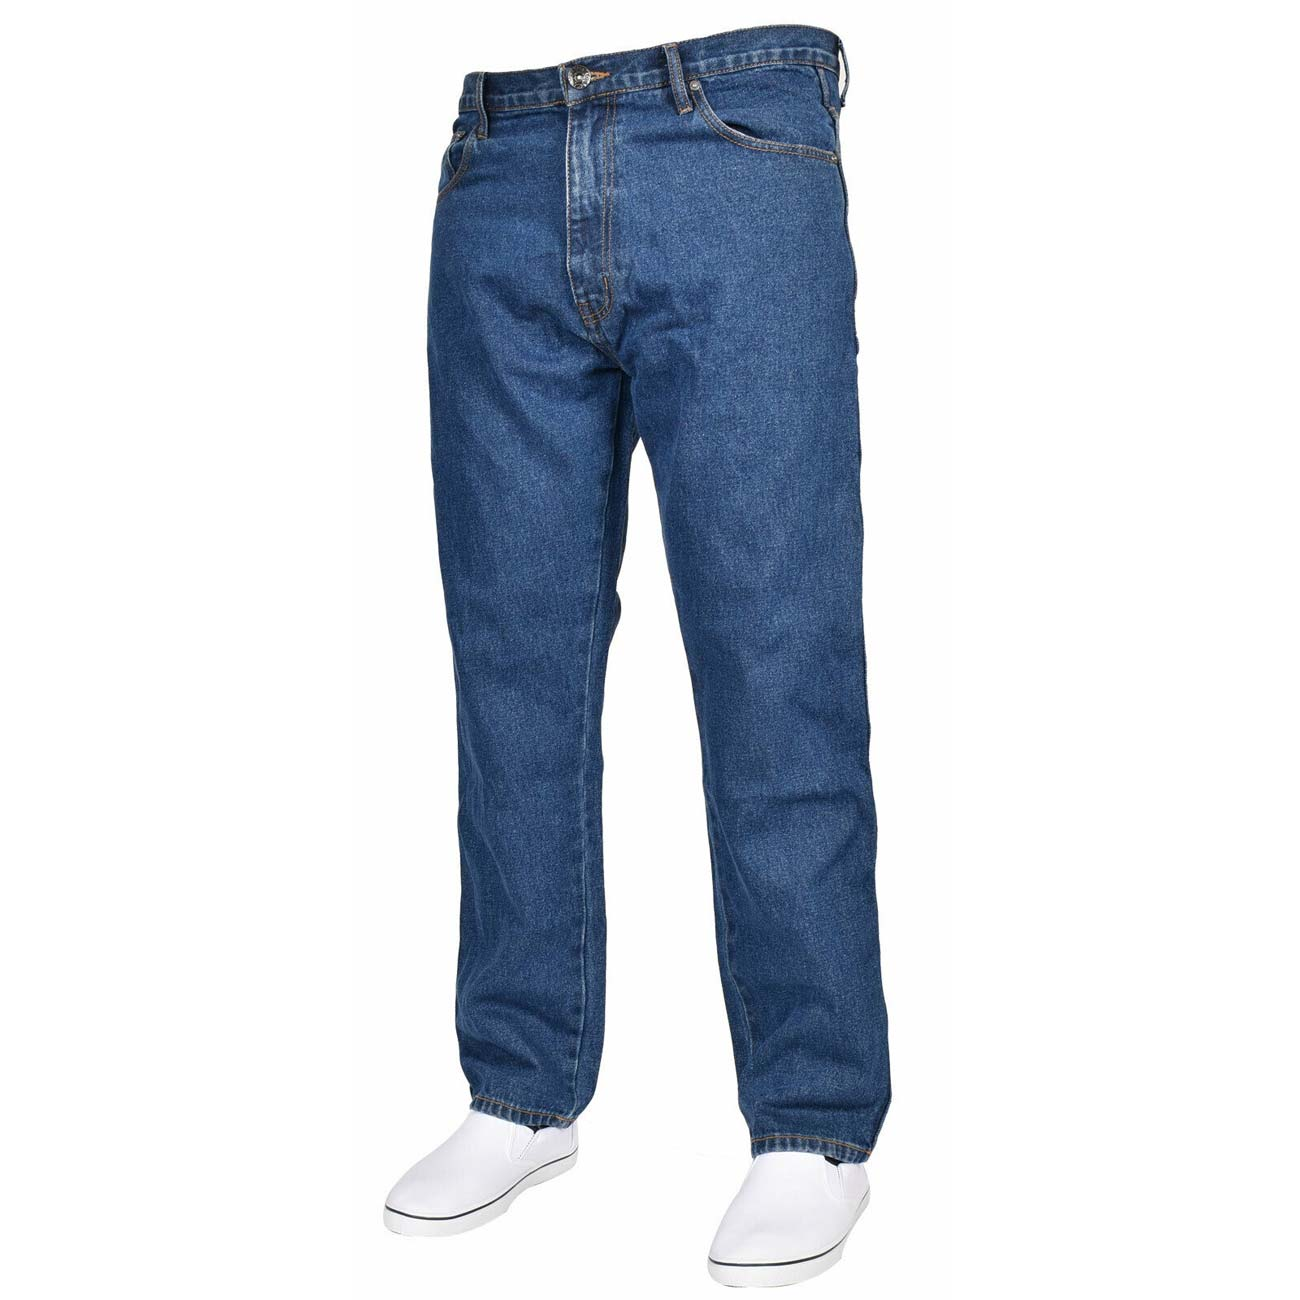 TF100 Mens Straight Leg Denim Jeans